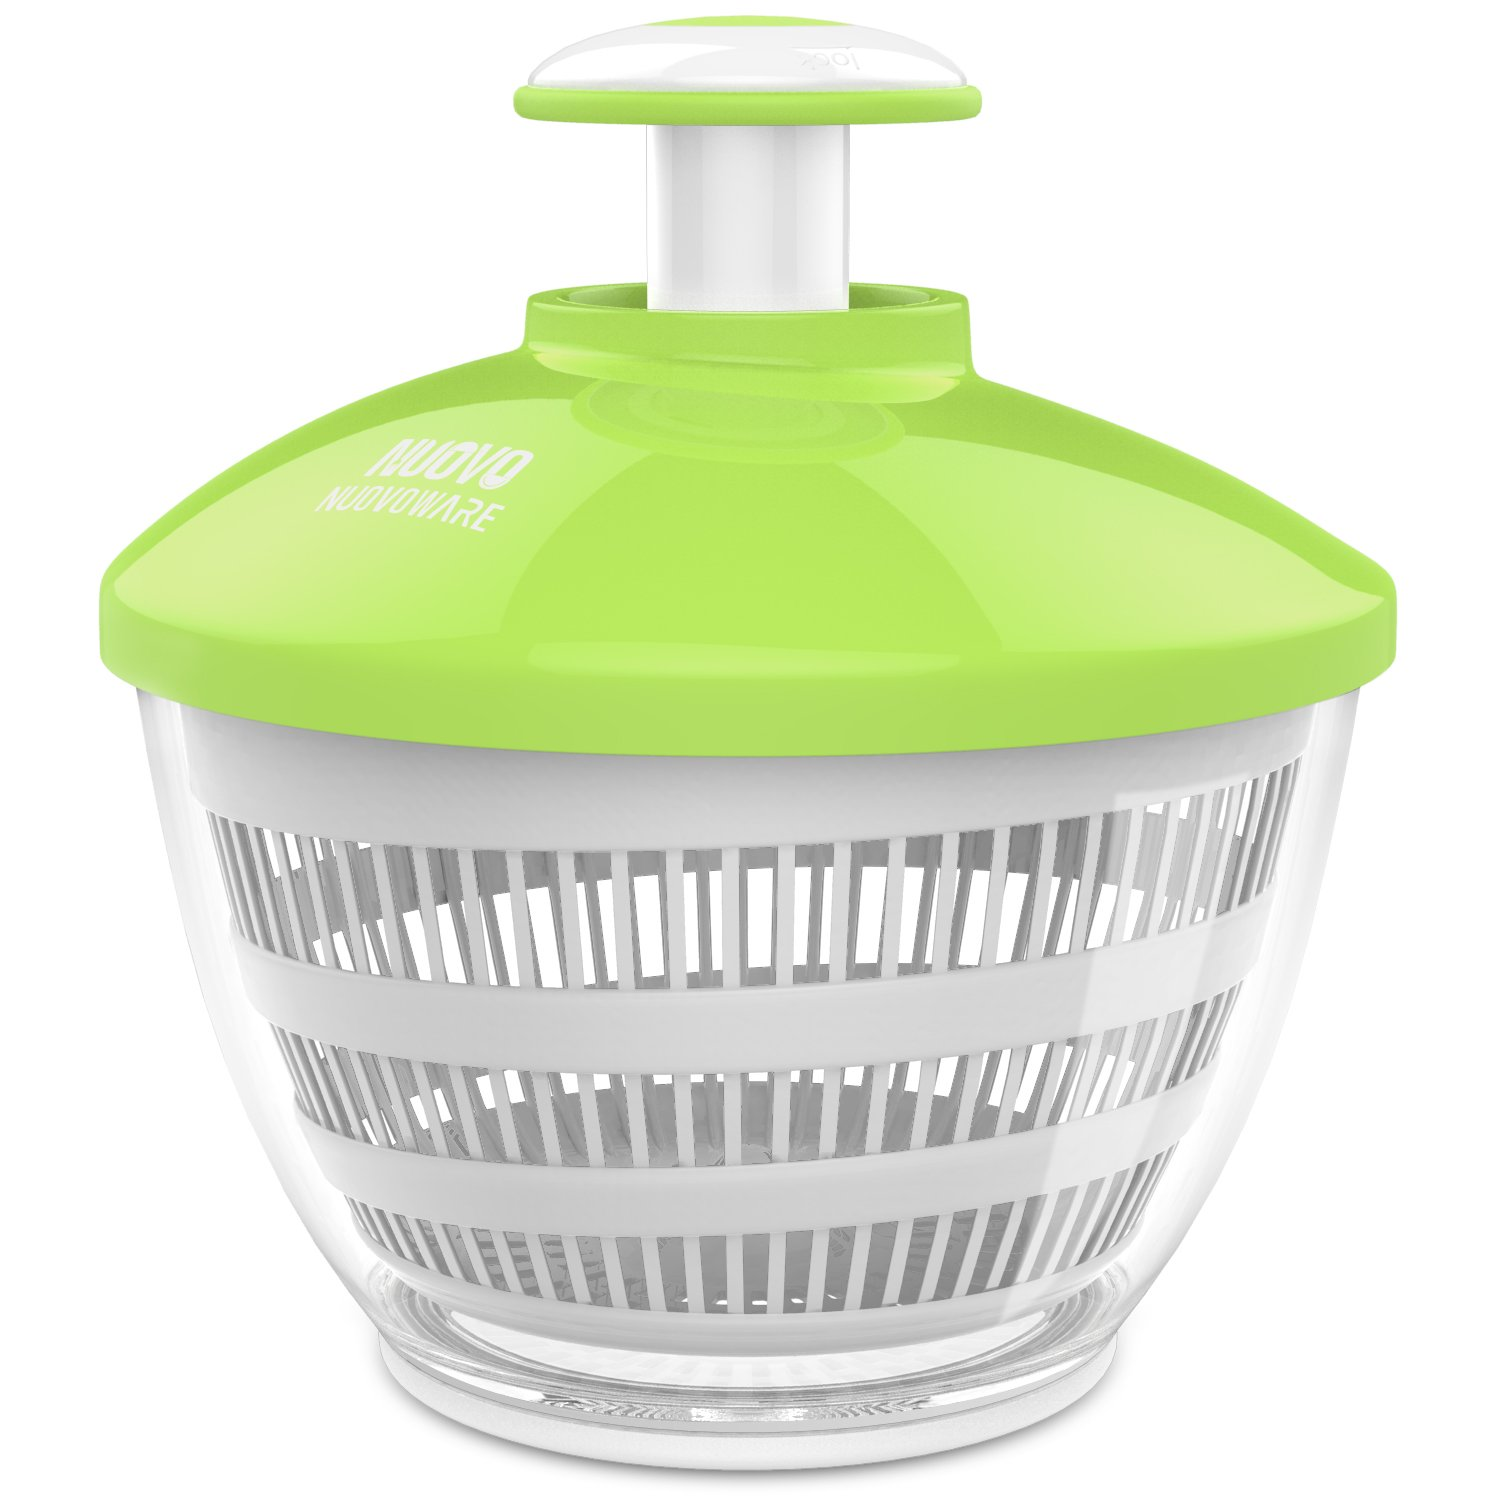 Nuovoware Salad Spinner, Premium Fast Dry Off Drain Salad Vegetable Spinner with 3.6 Quart Large Bowl and Paddle Mechanism for Easy and Faster Food Prep, White & Green